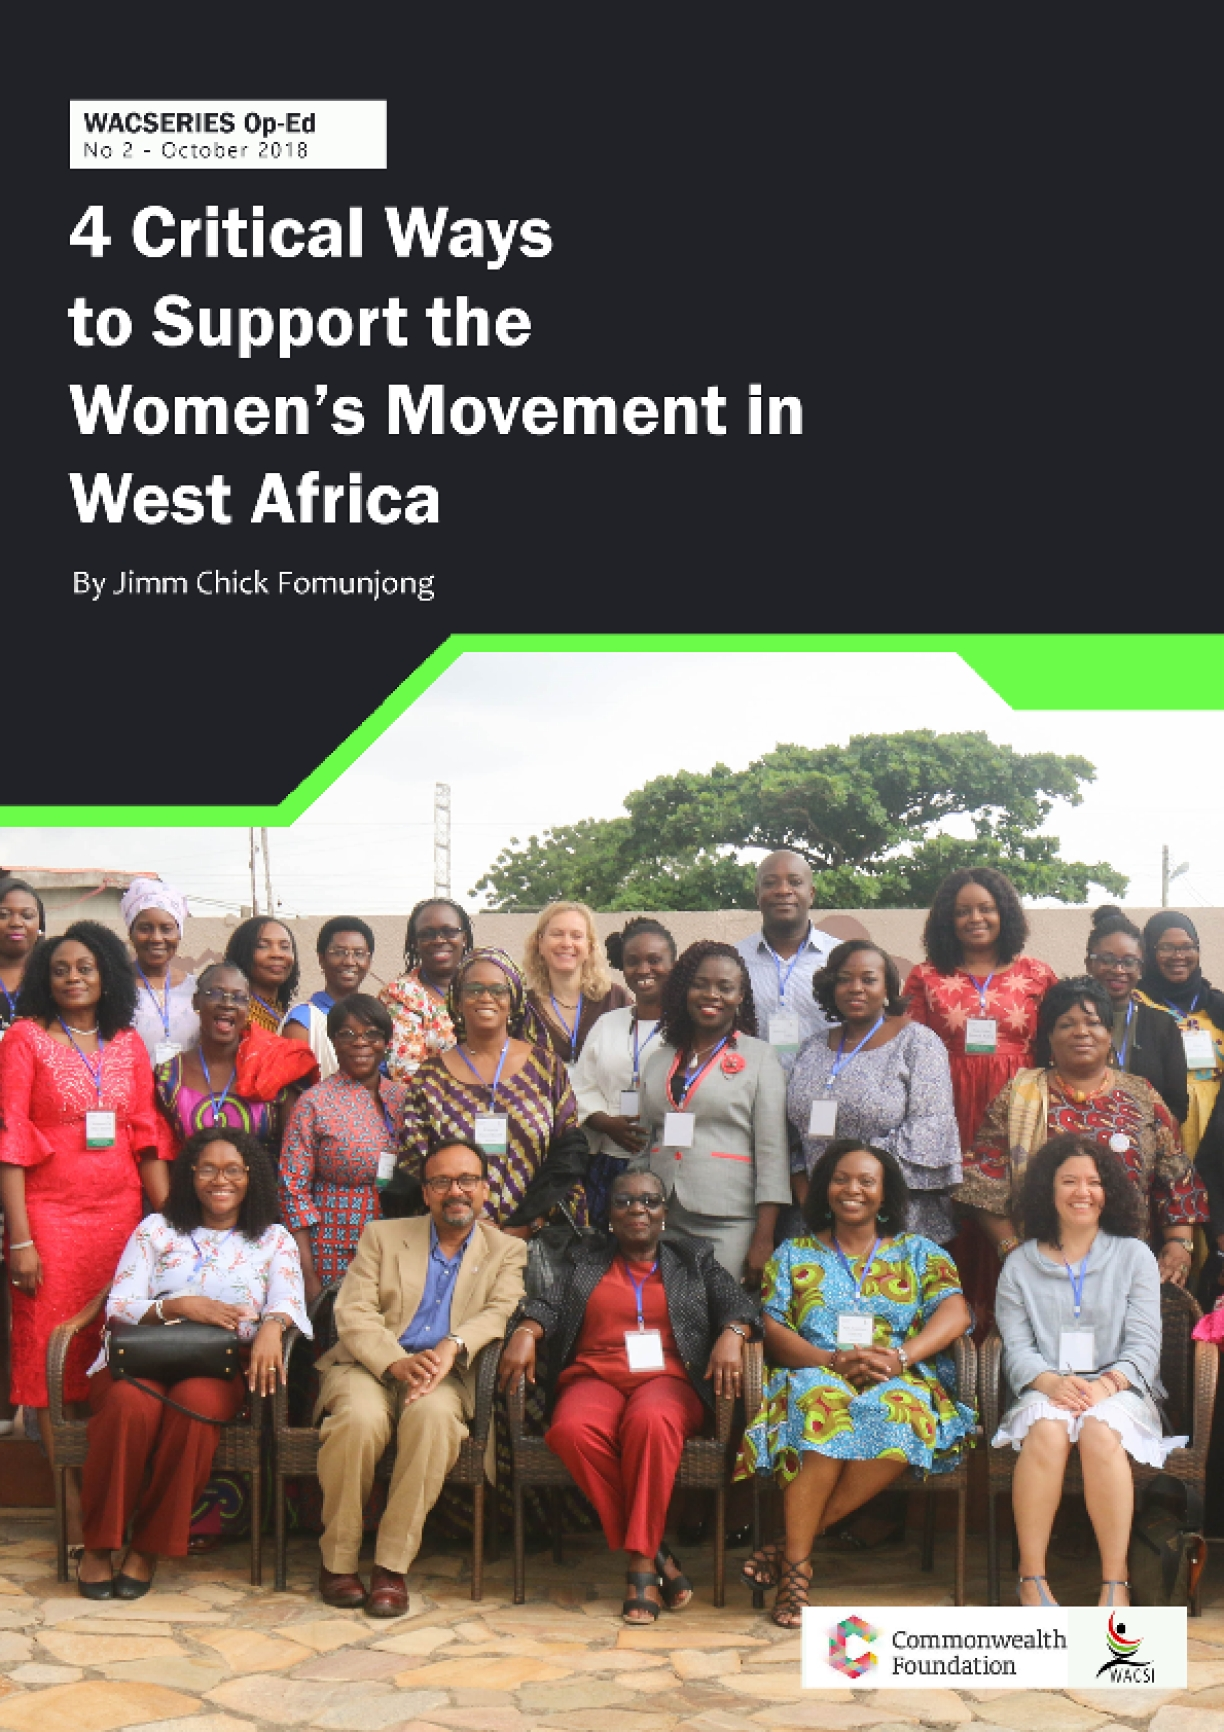 4 Critical Ways to Support the Women's Movement in West Africa